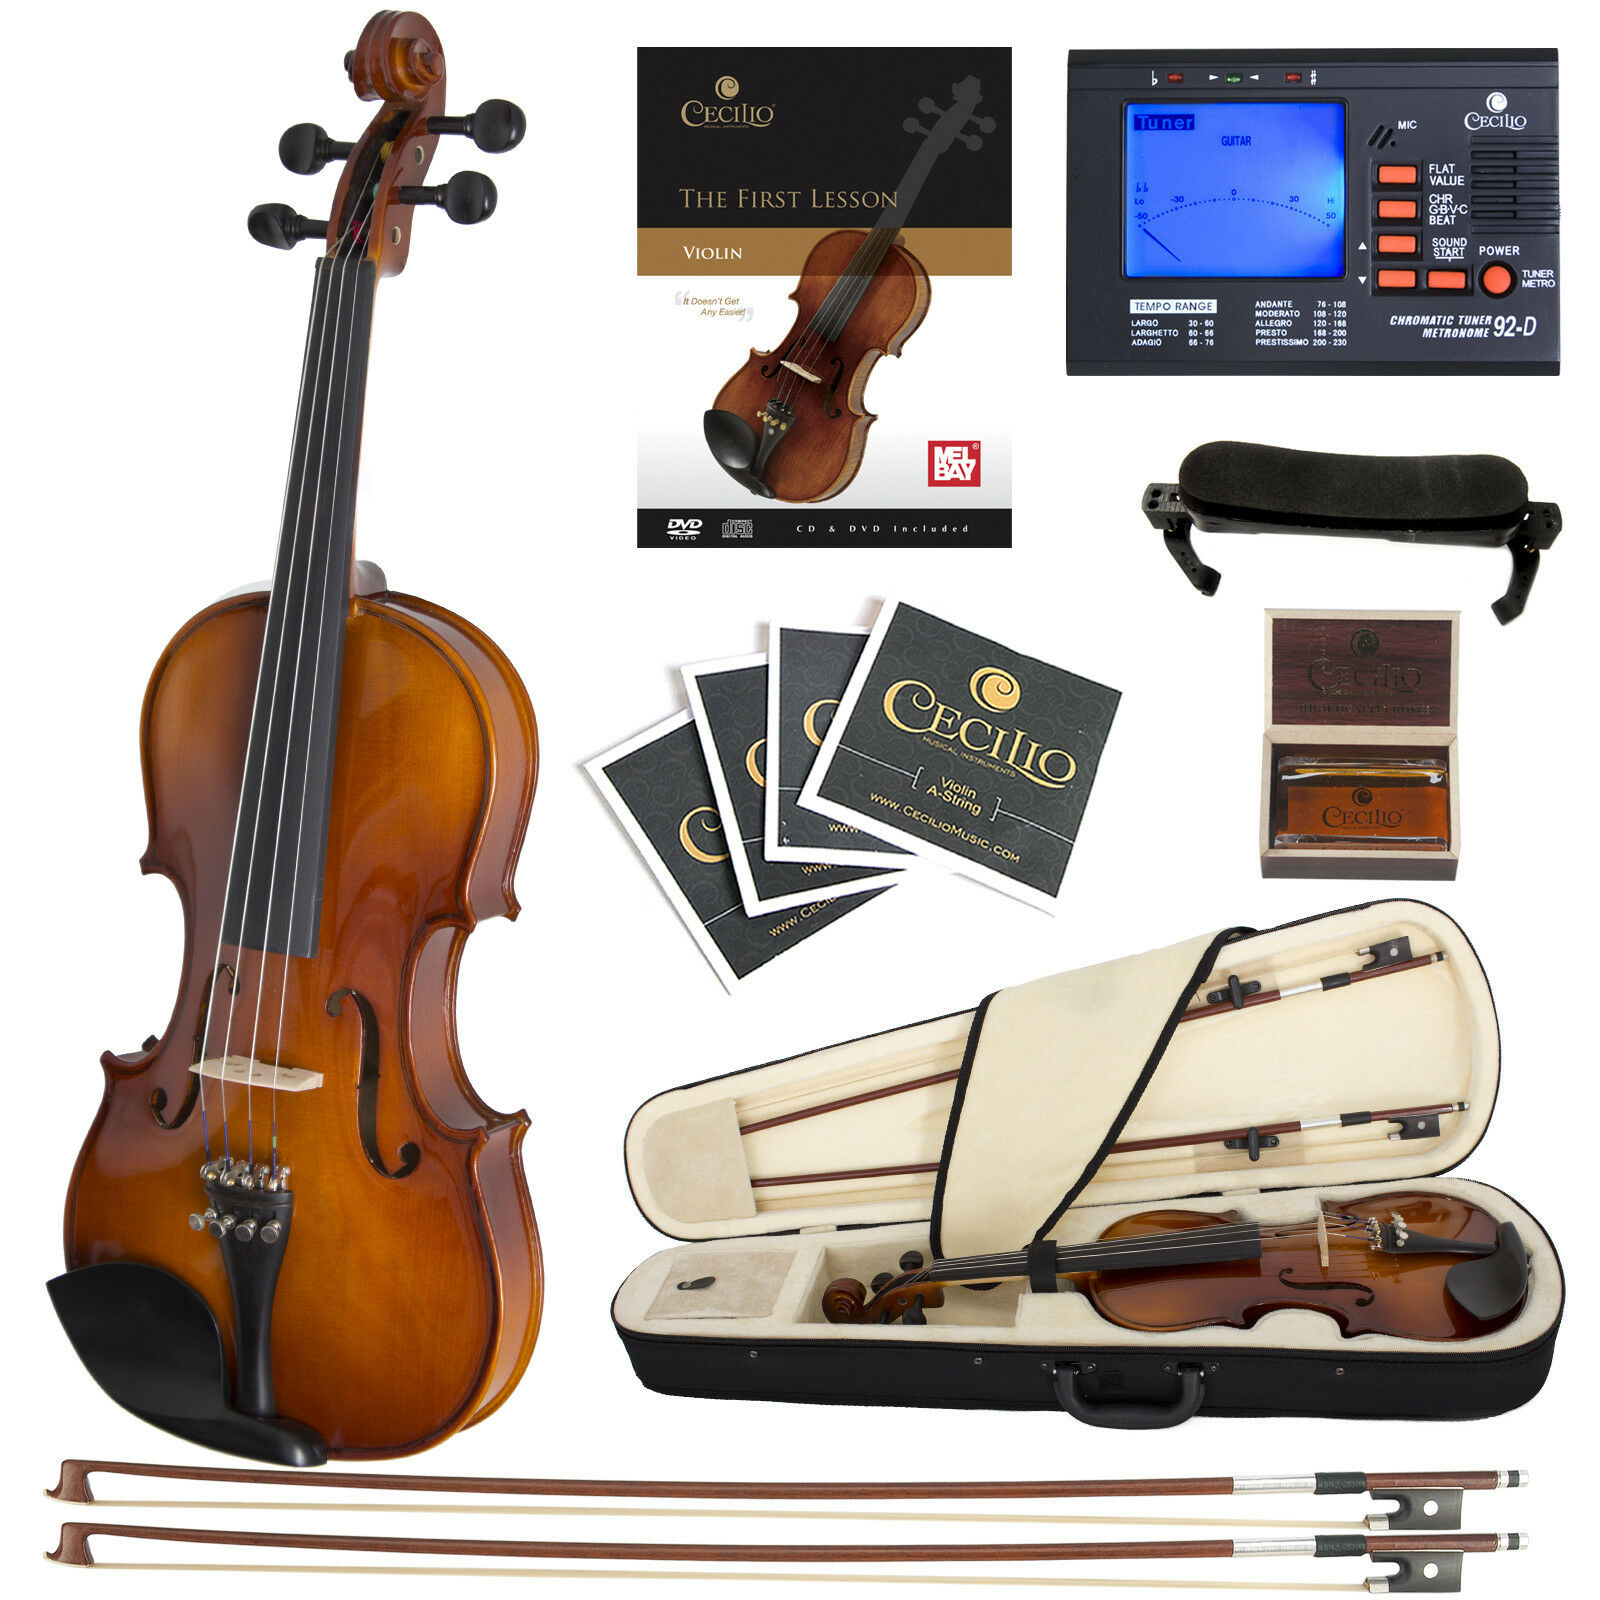 Cecilio CVN-300 Ebony Fitted Solid Wood Violin + Tuner and Lesson Book, Size 1 4